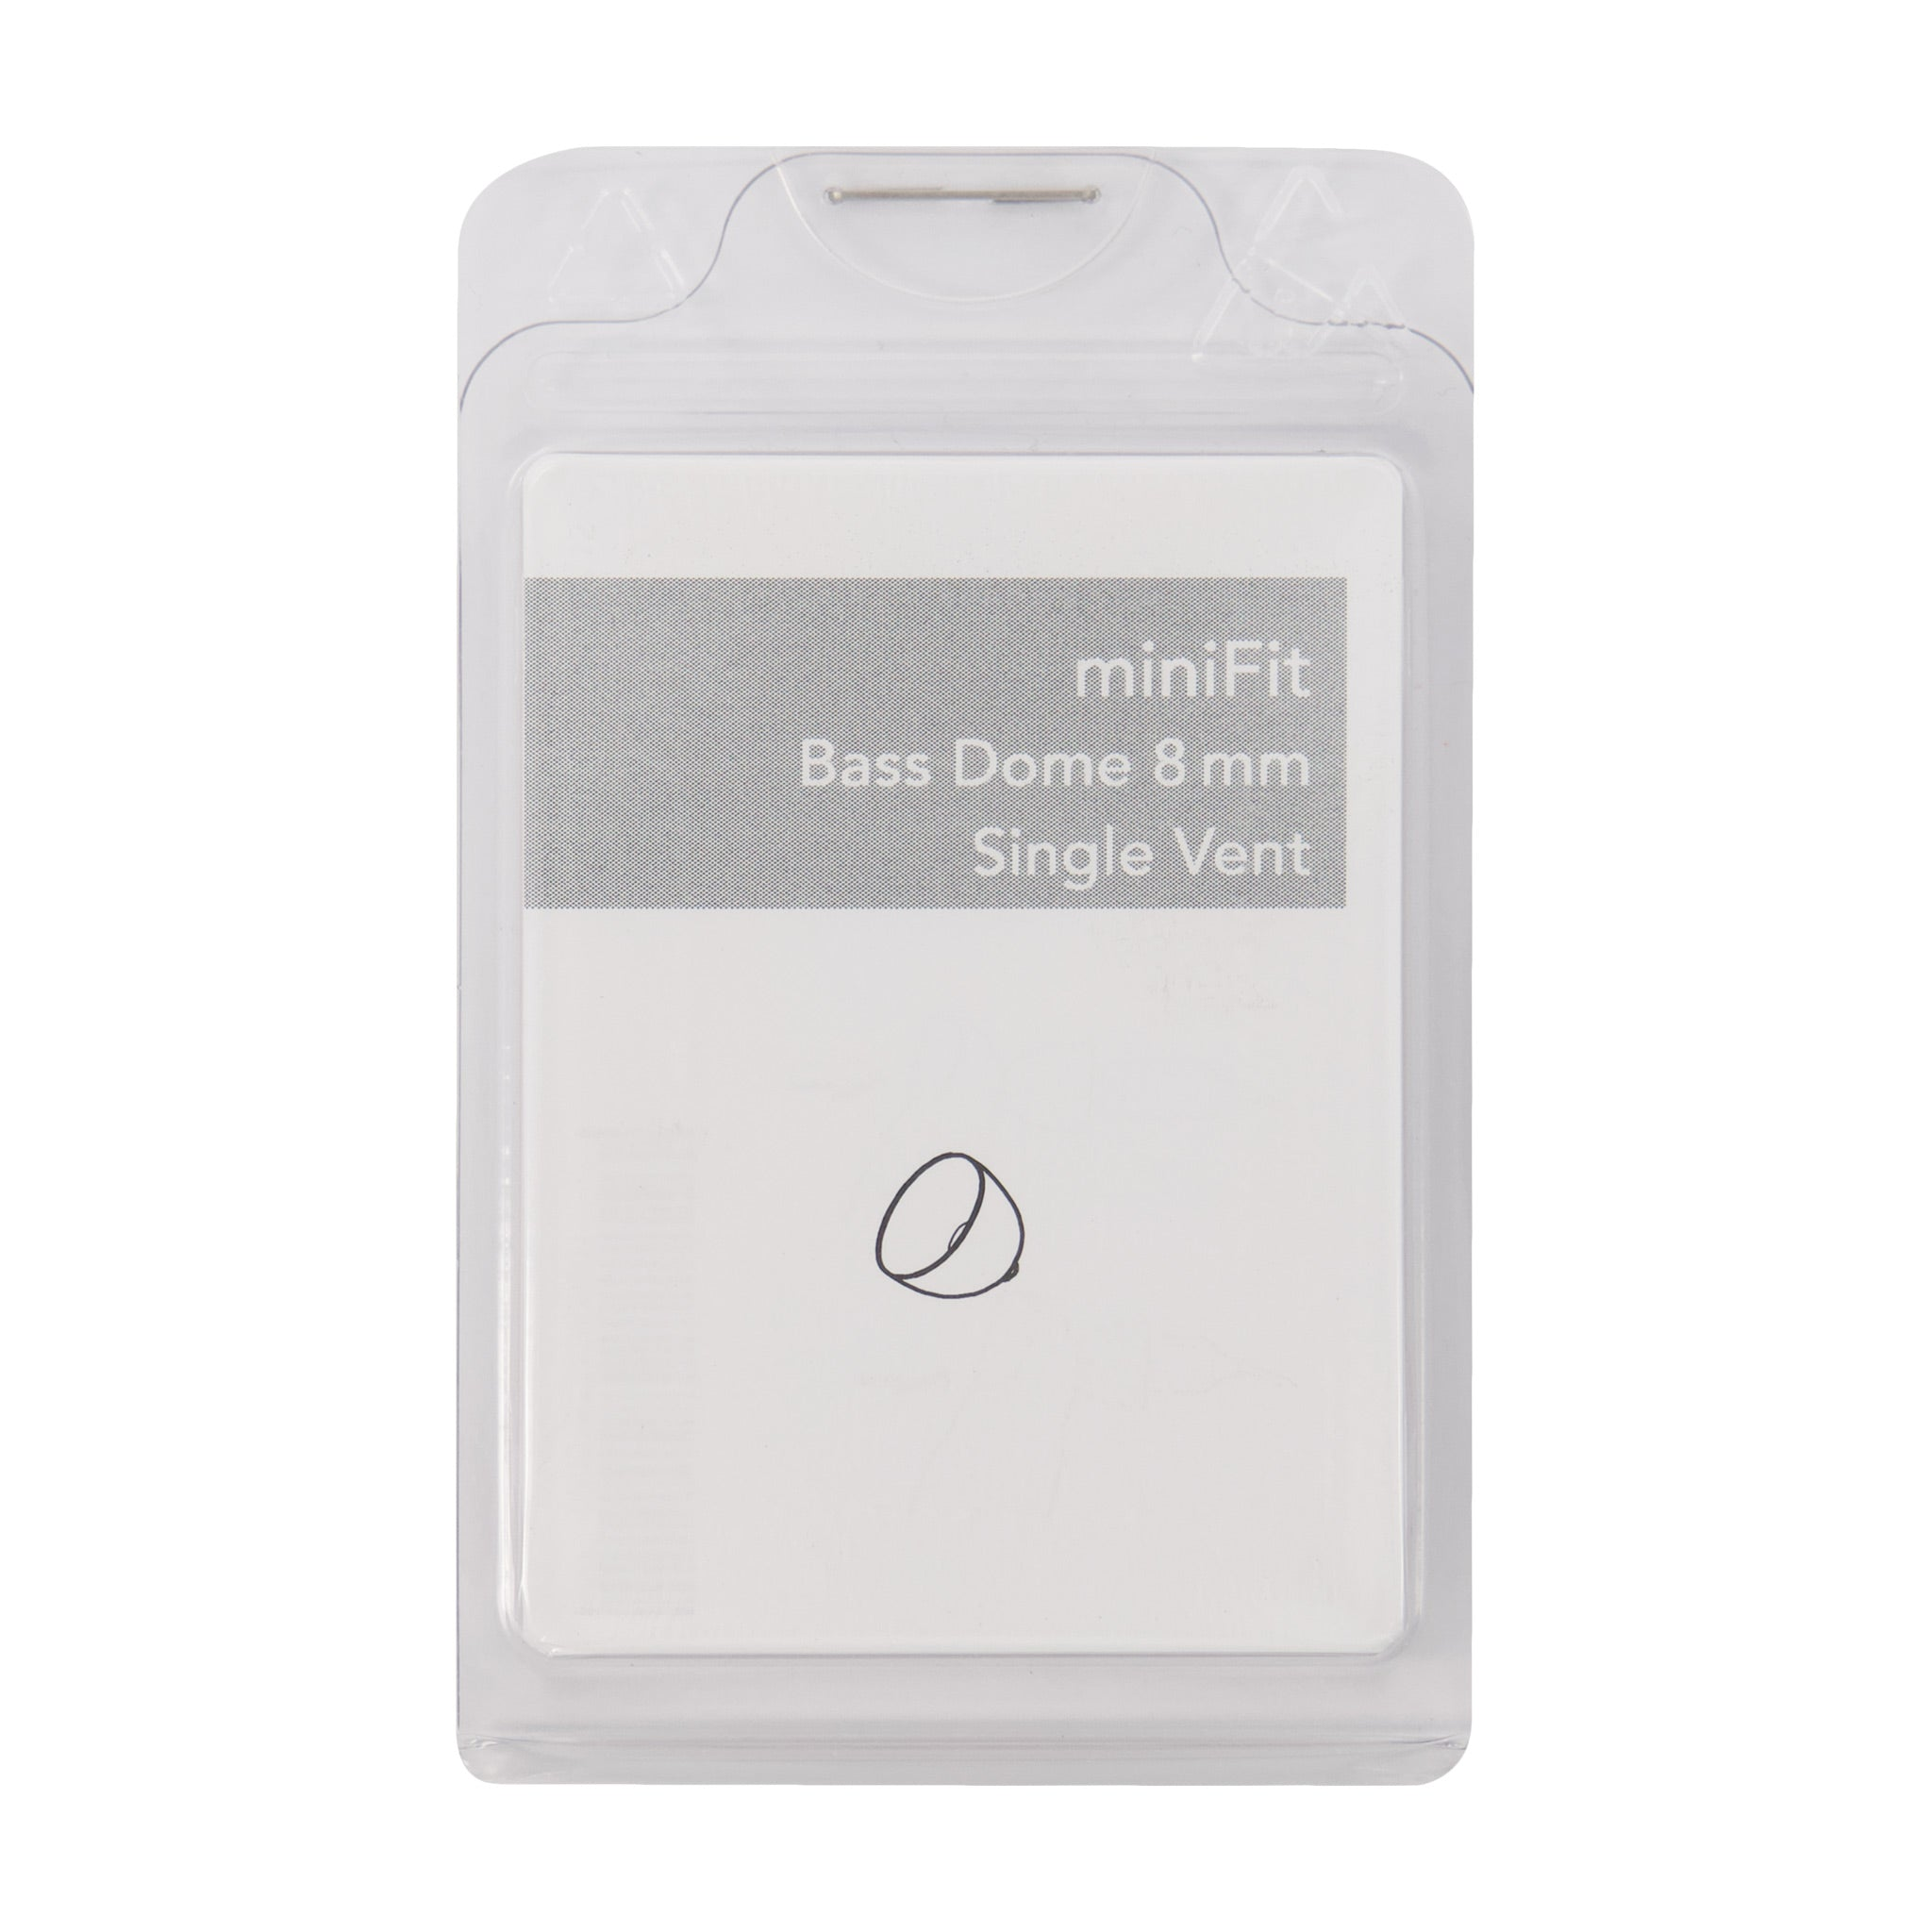 miniFit Bass Dome 8mm Single Vent for Bernafon, Sonic and Phillips RITE Hearing Aids